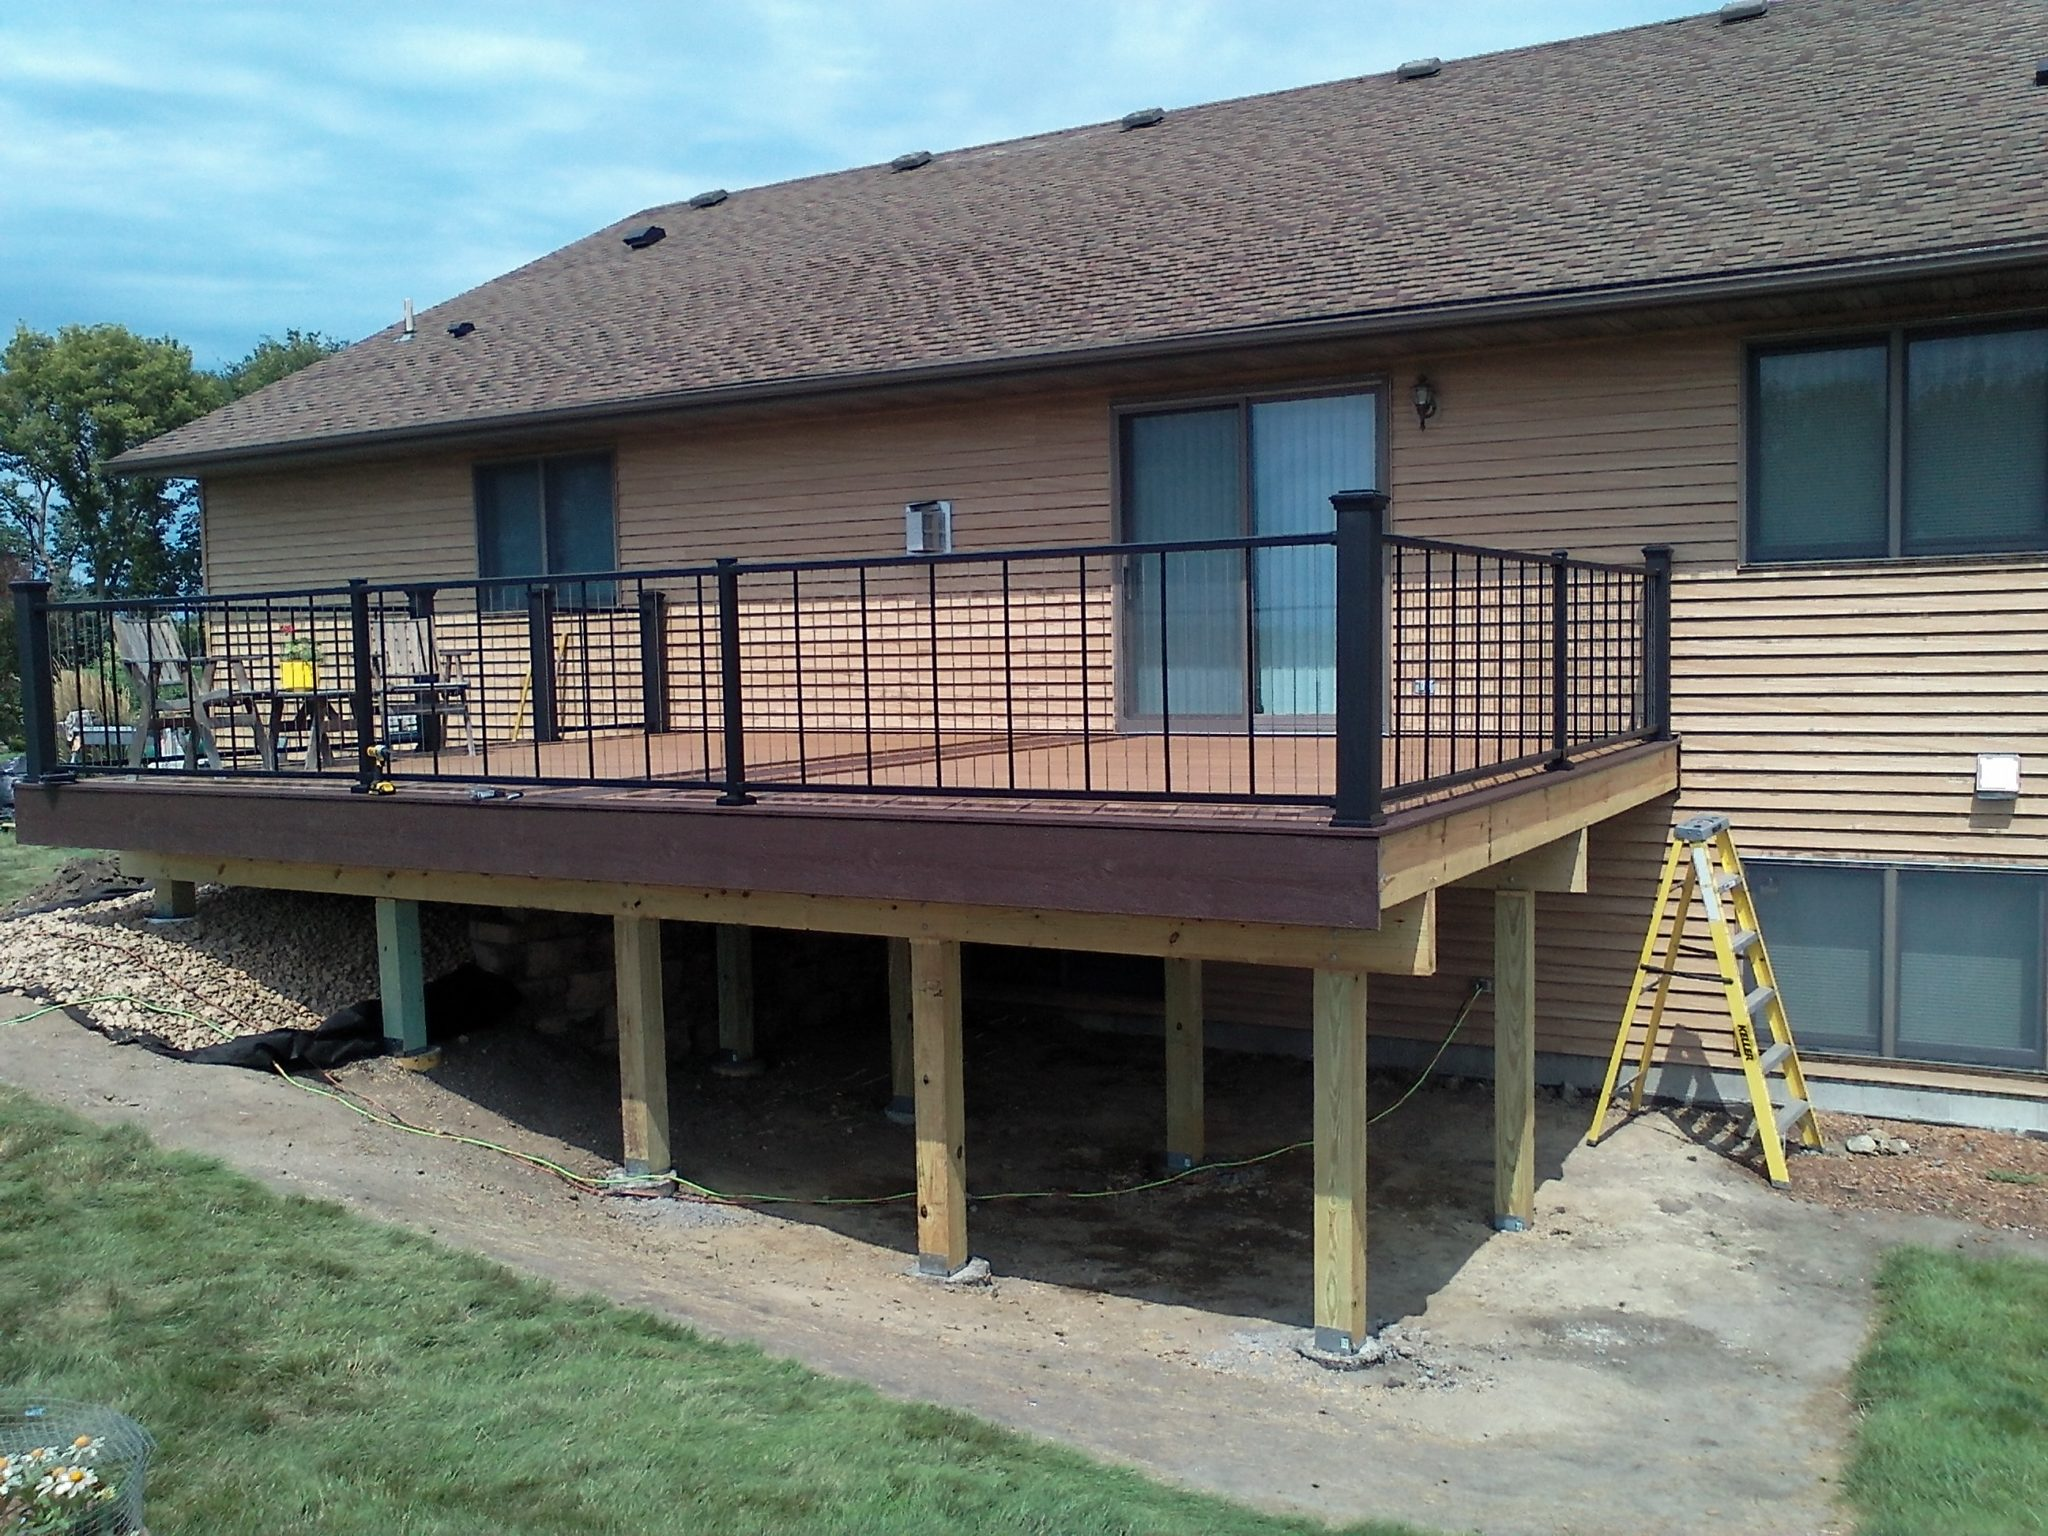 mankato-deck-and-railing-141841